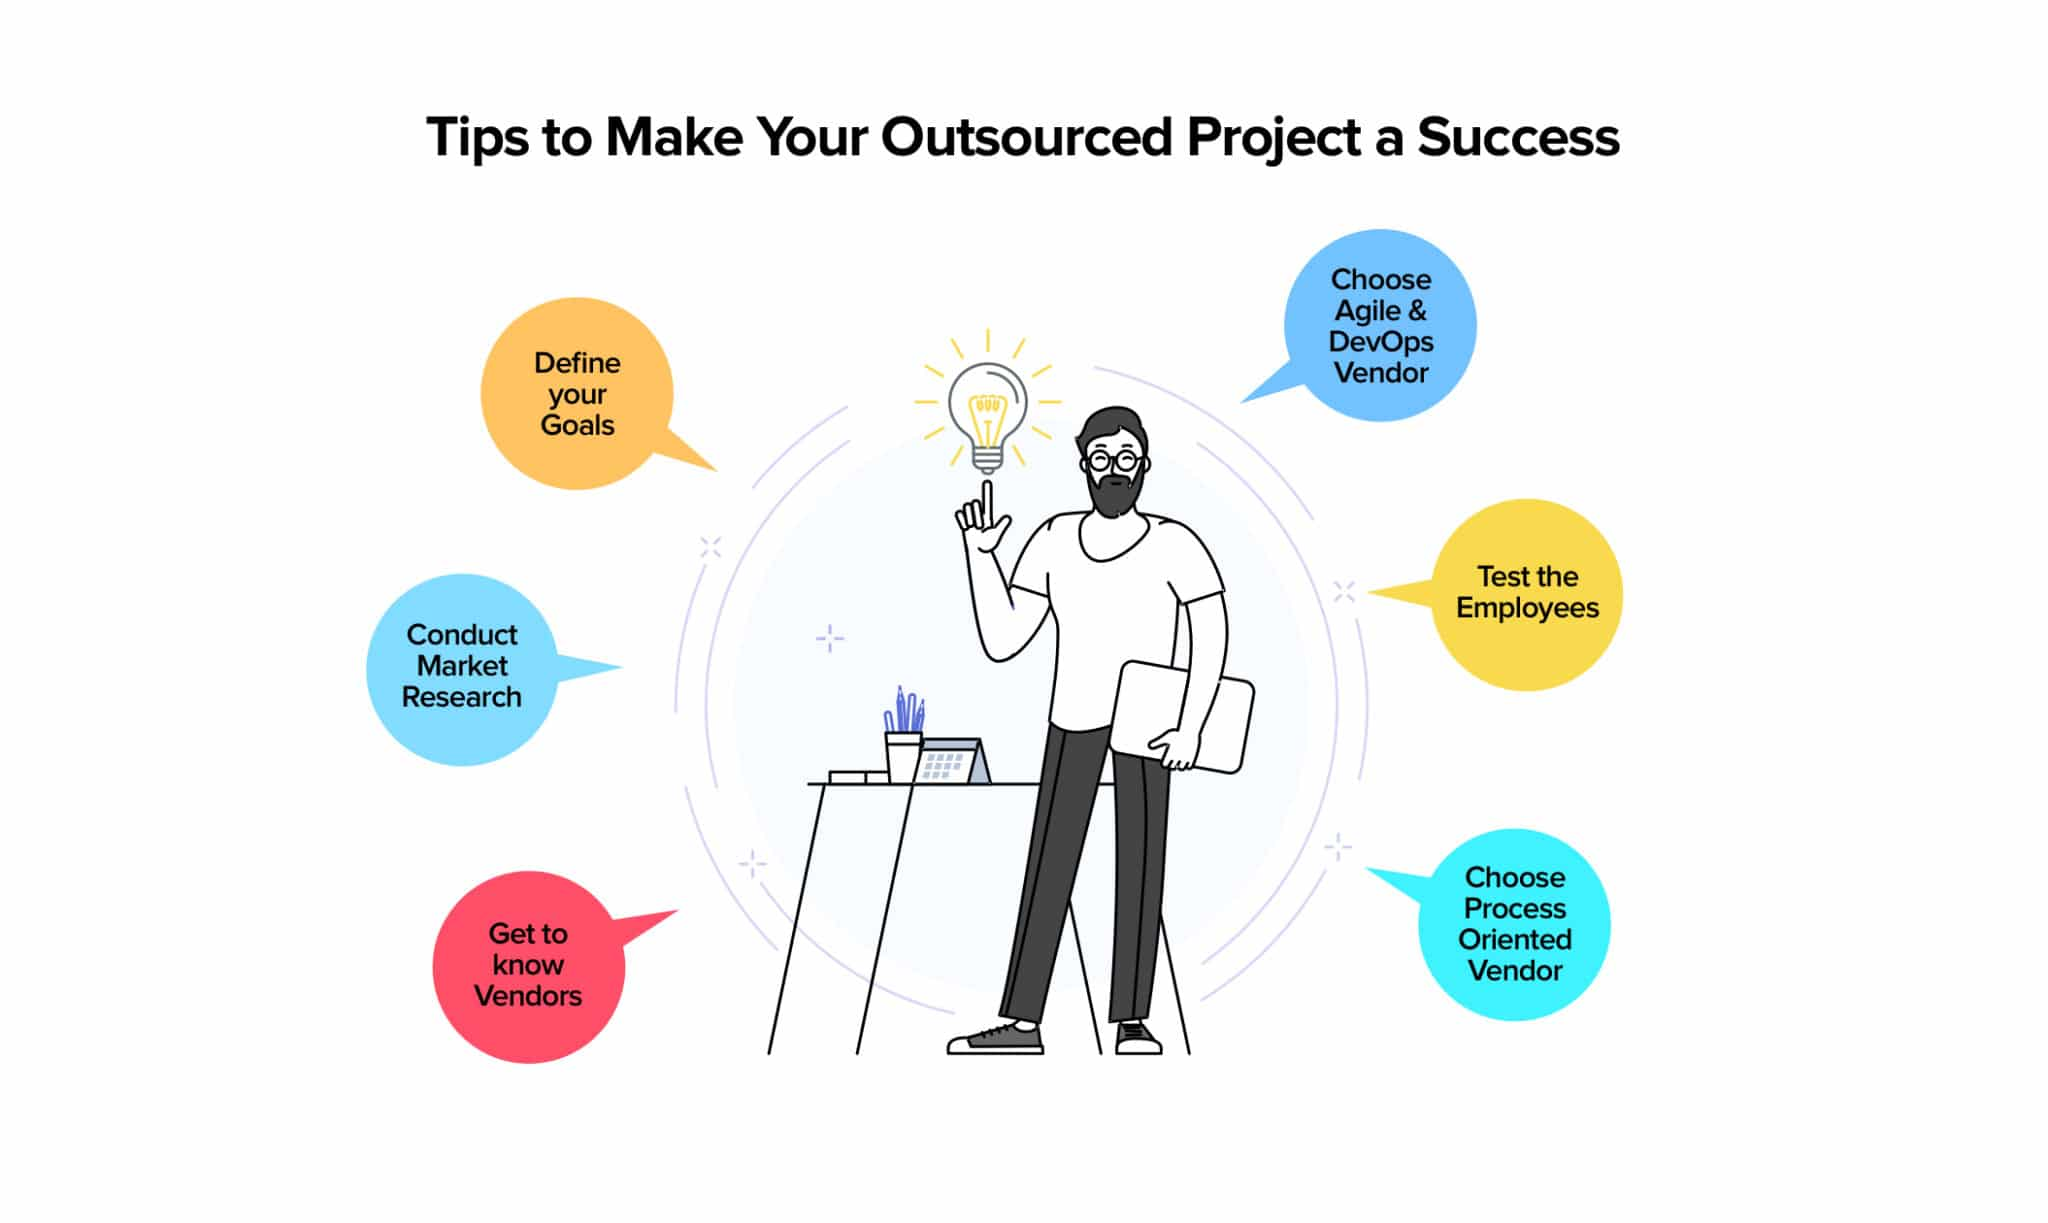 Tips to Make Your Outsource Project a Success